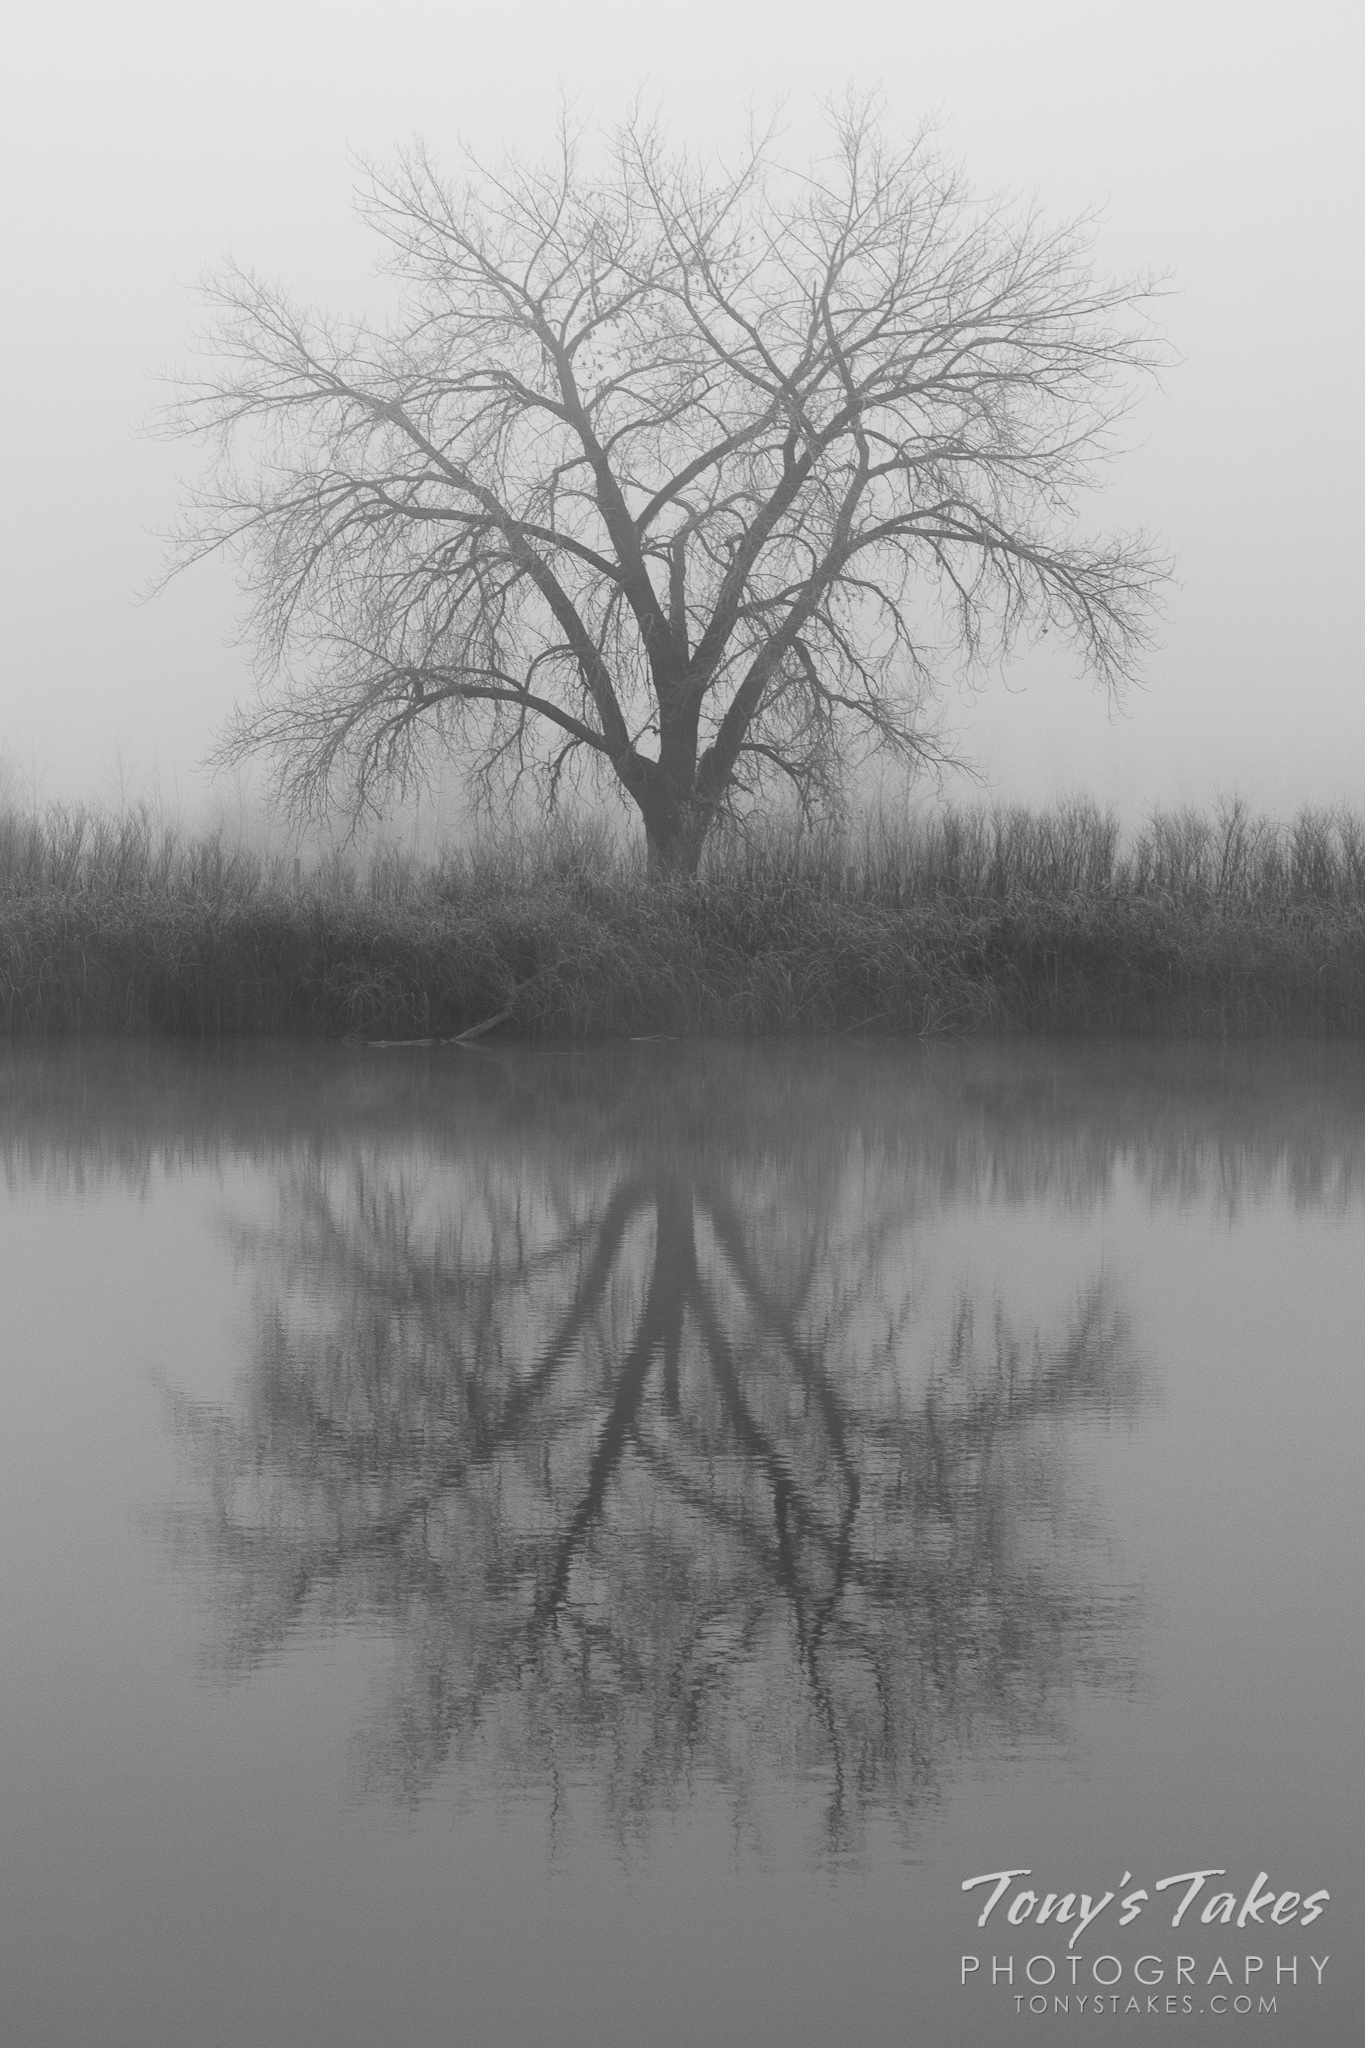 Solitary reflections in black and white